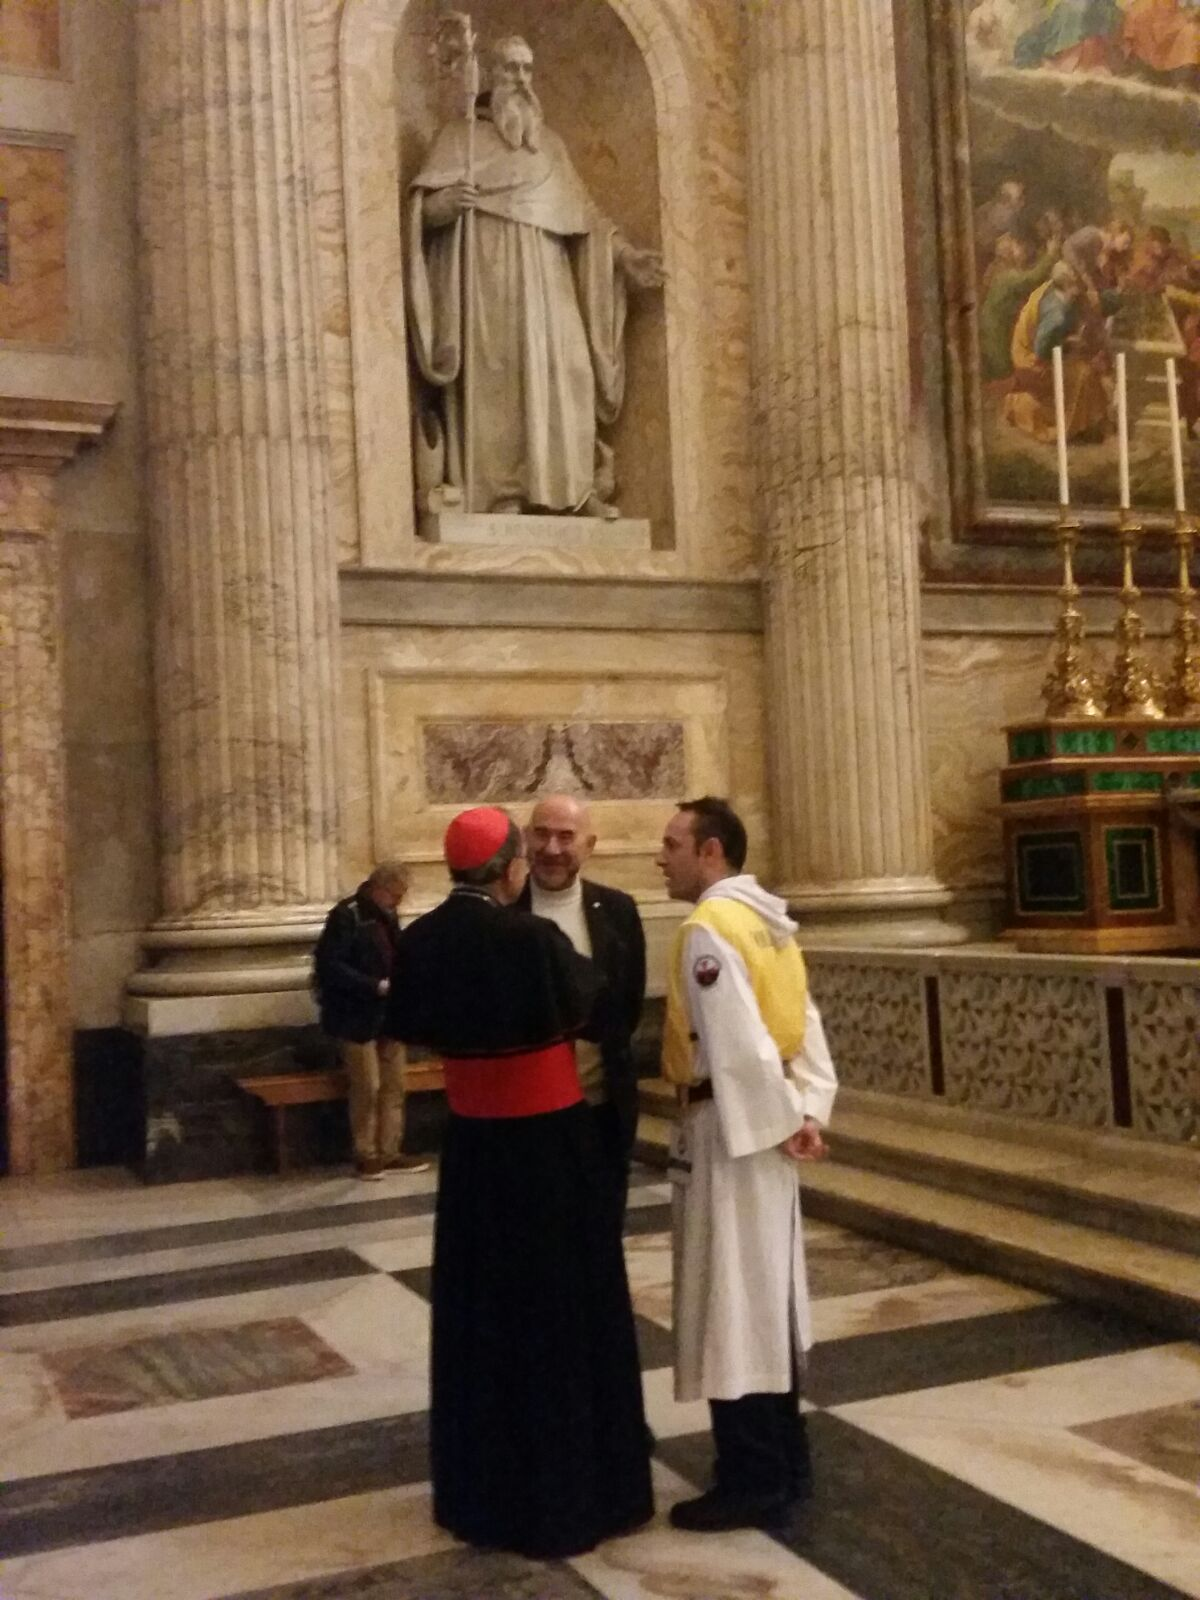 Catholic Templars of Italy with the Primate of Gauls in the Papal Basilica of Saint Paul Outside the Walls